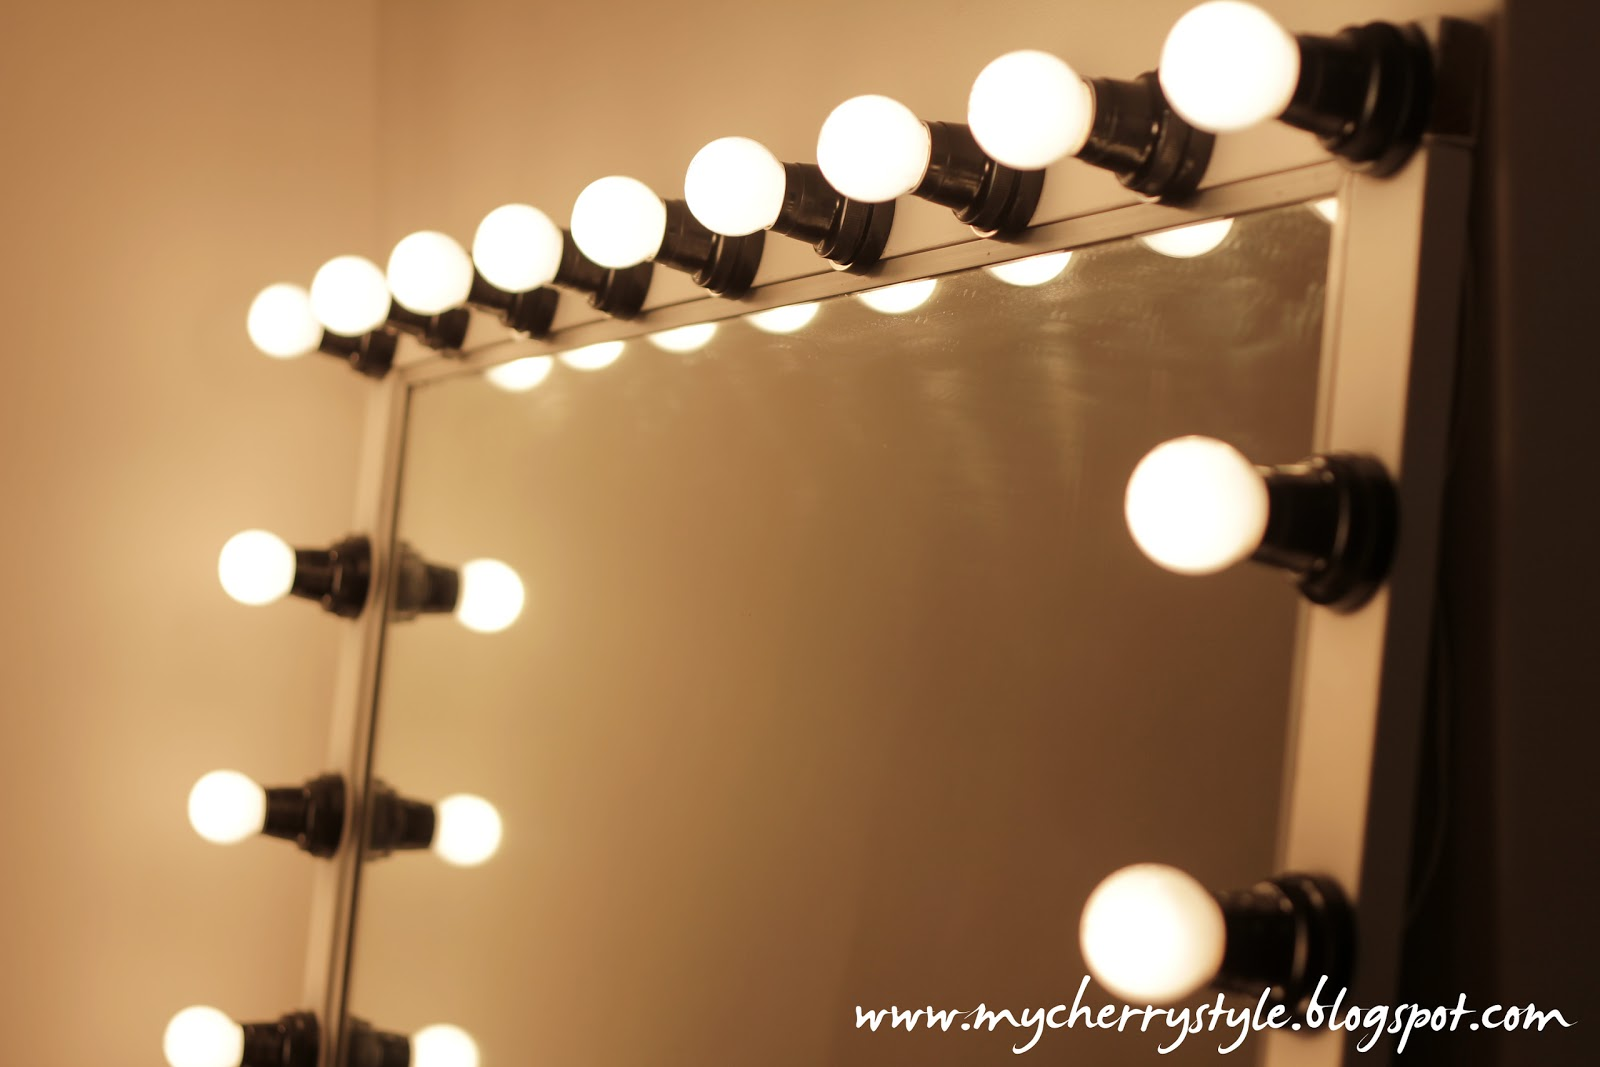 diy vanity light mirror. DIY Hollywood style mirror with lights  Tutorial from scratch for real my cherry